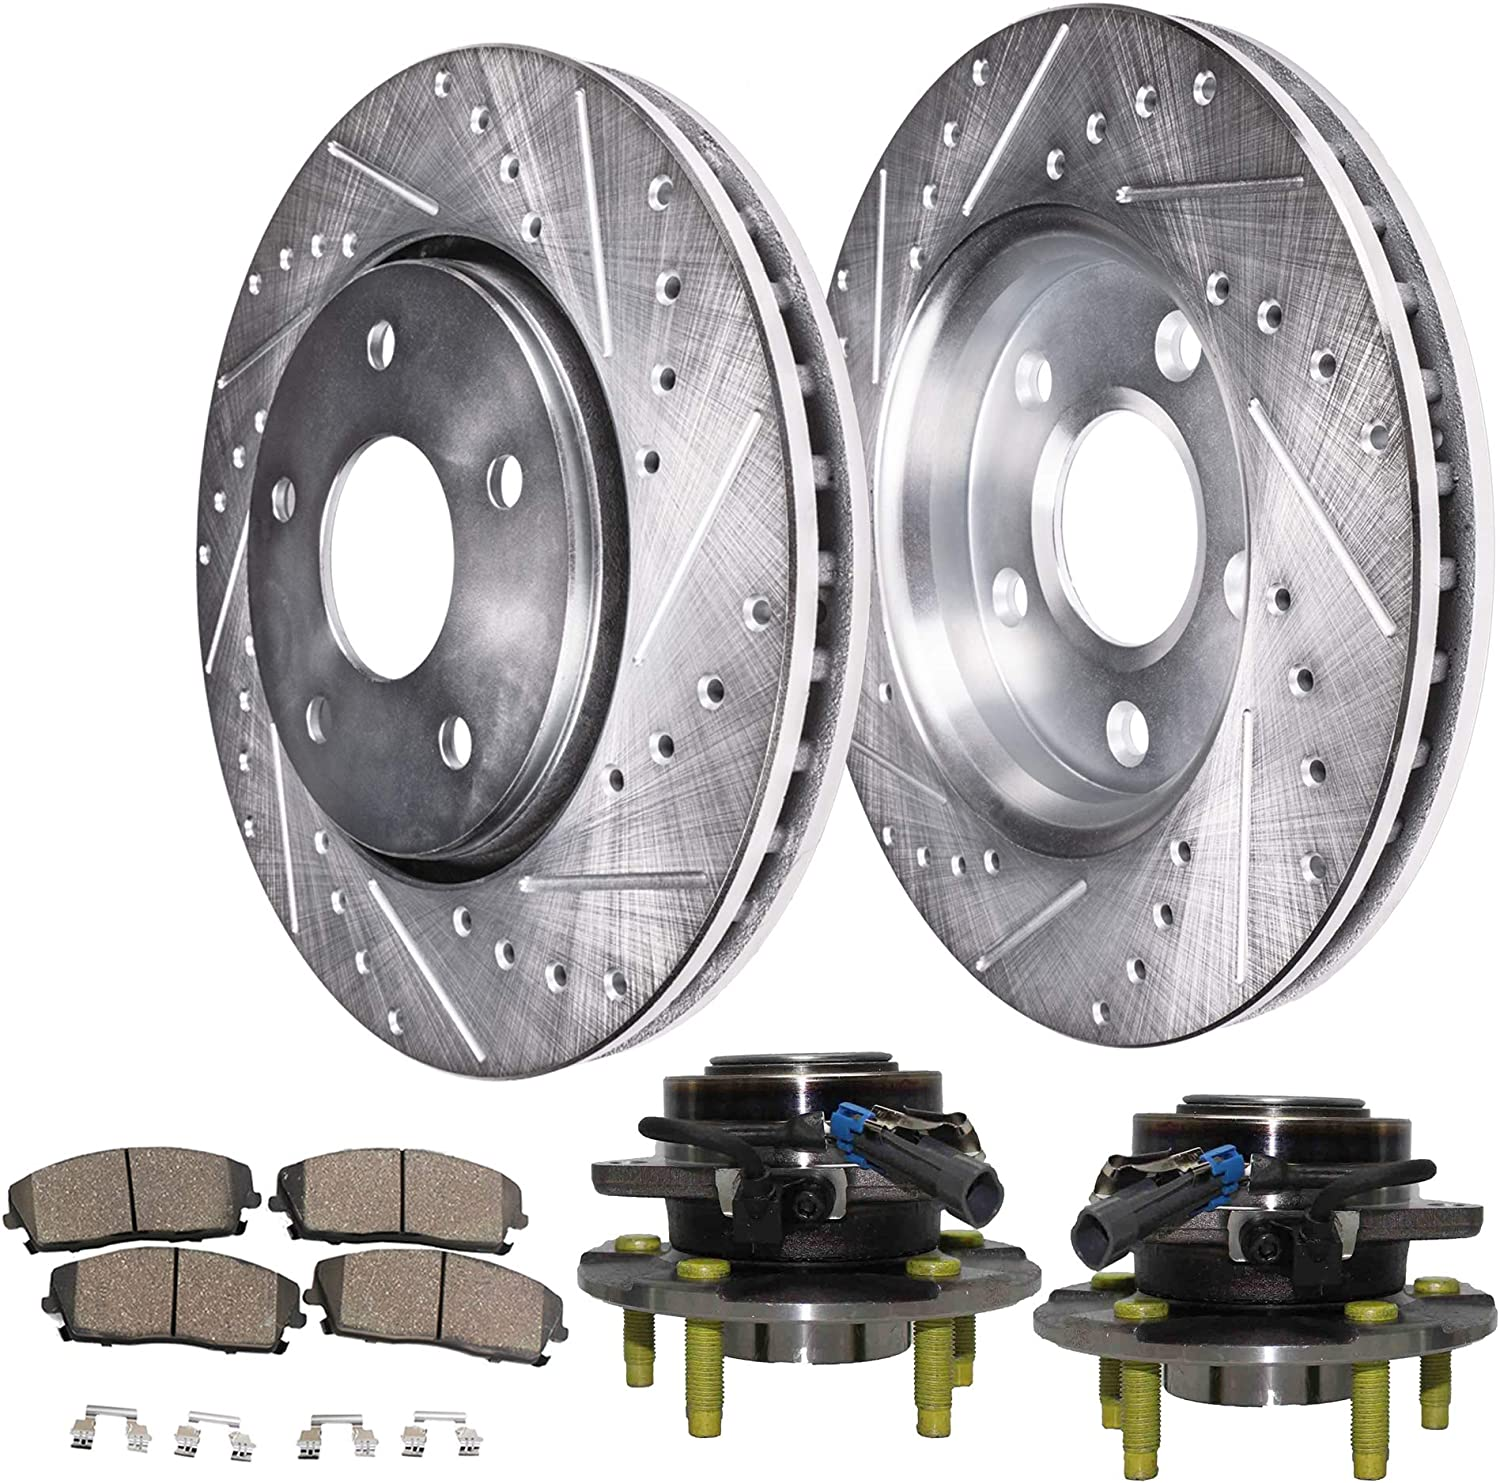 2002 2003 2004 for Saturn Vue Disc Brake Rotors and Ceramic Pads Front